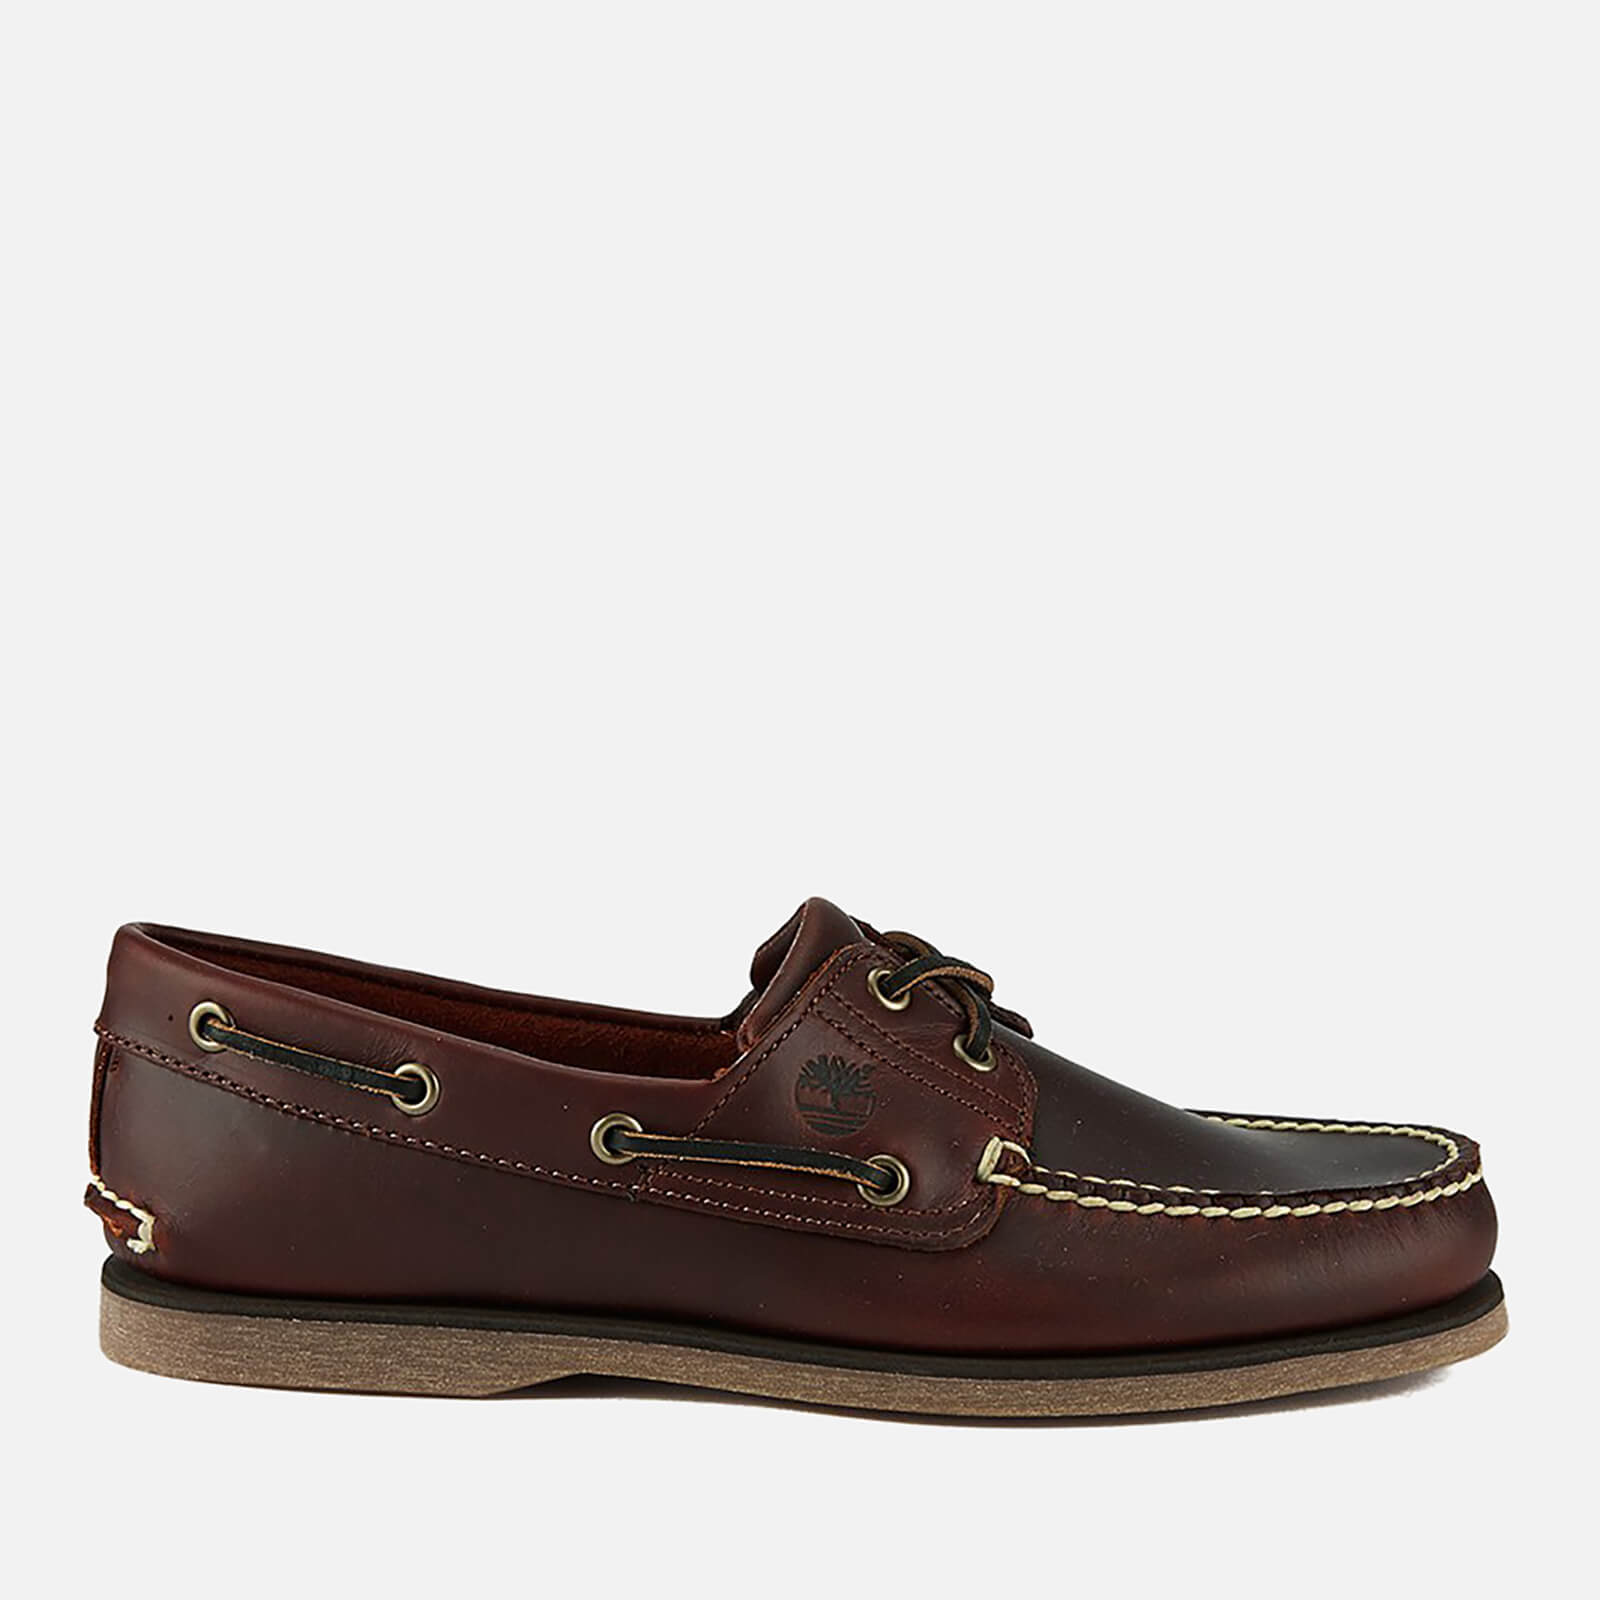 Timberland Men's Classic 2 Eye Boat Shoes Rootbeer Smooth